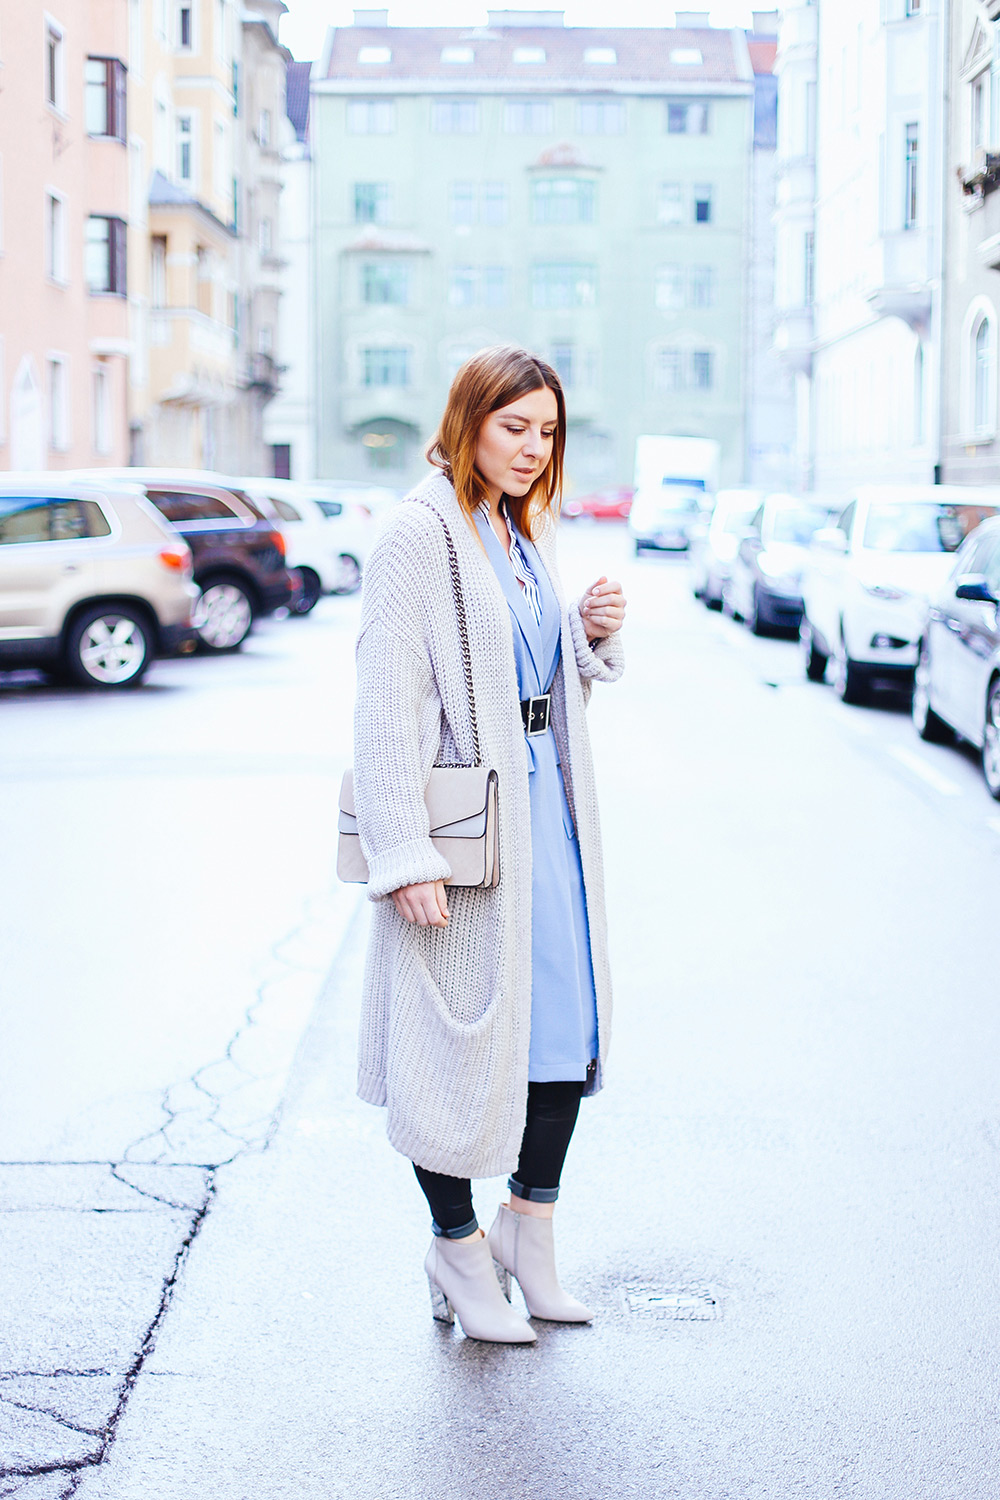 hellblaue Weste, perfekte Lederhose, layering, lagenlook, cardigan, gucci dionsysus, spring outfit, fashion blog, whoismocca.com